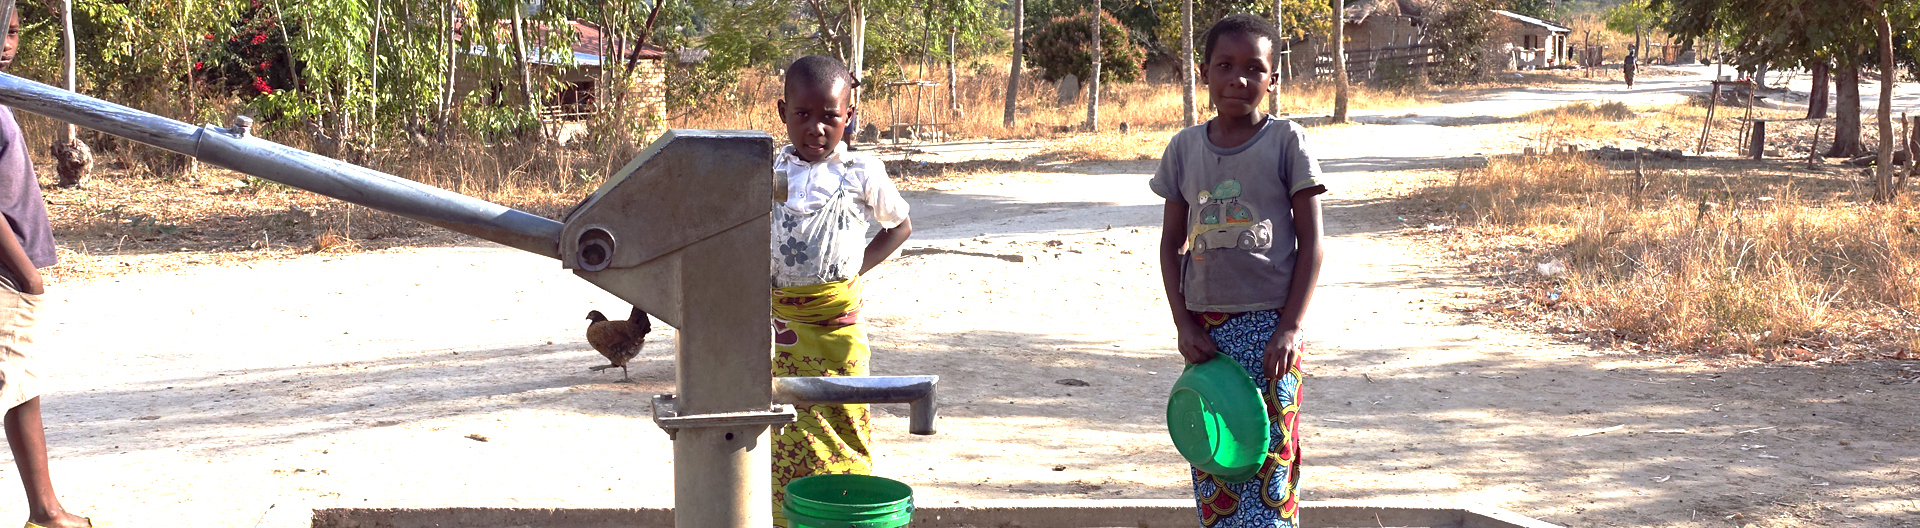 Children with water pump in Malawi